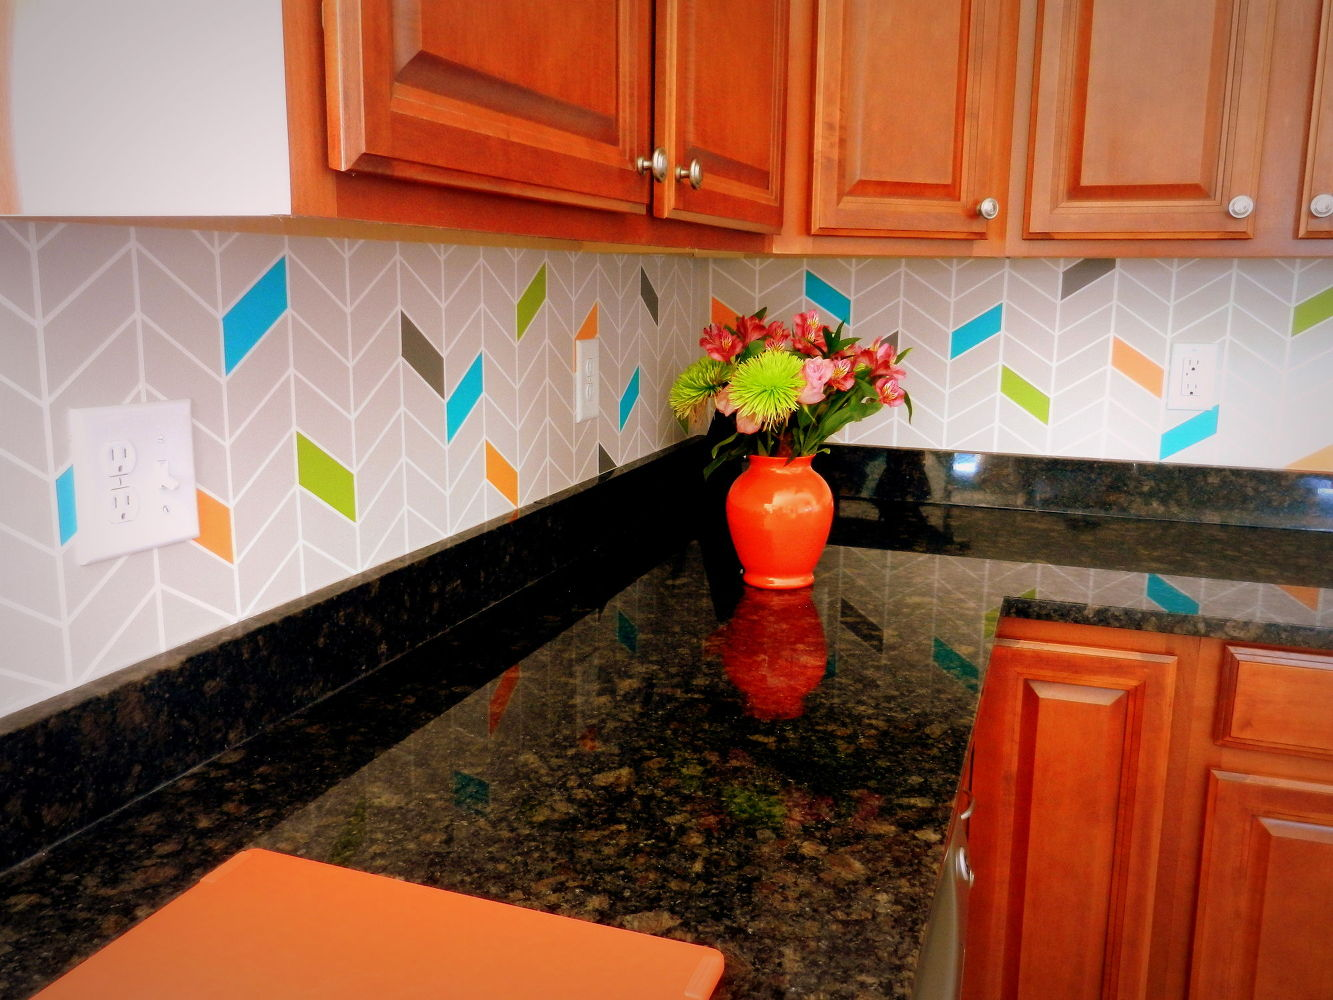 s 13 incredible kitchen backsplash ideas that aren t tile kitchen backsplash kitchen design